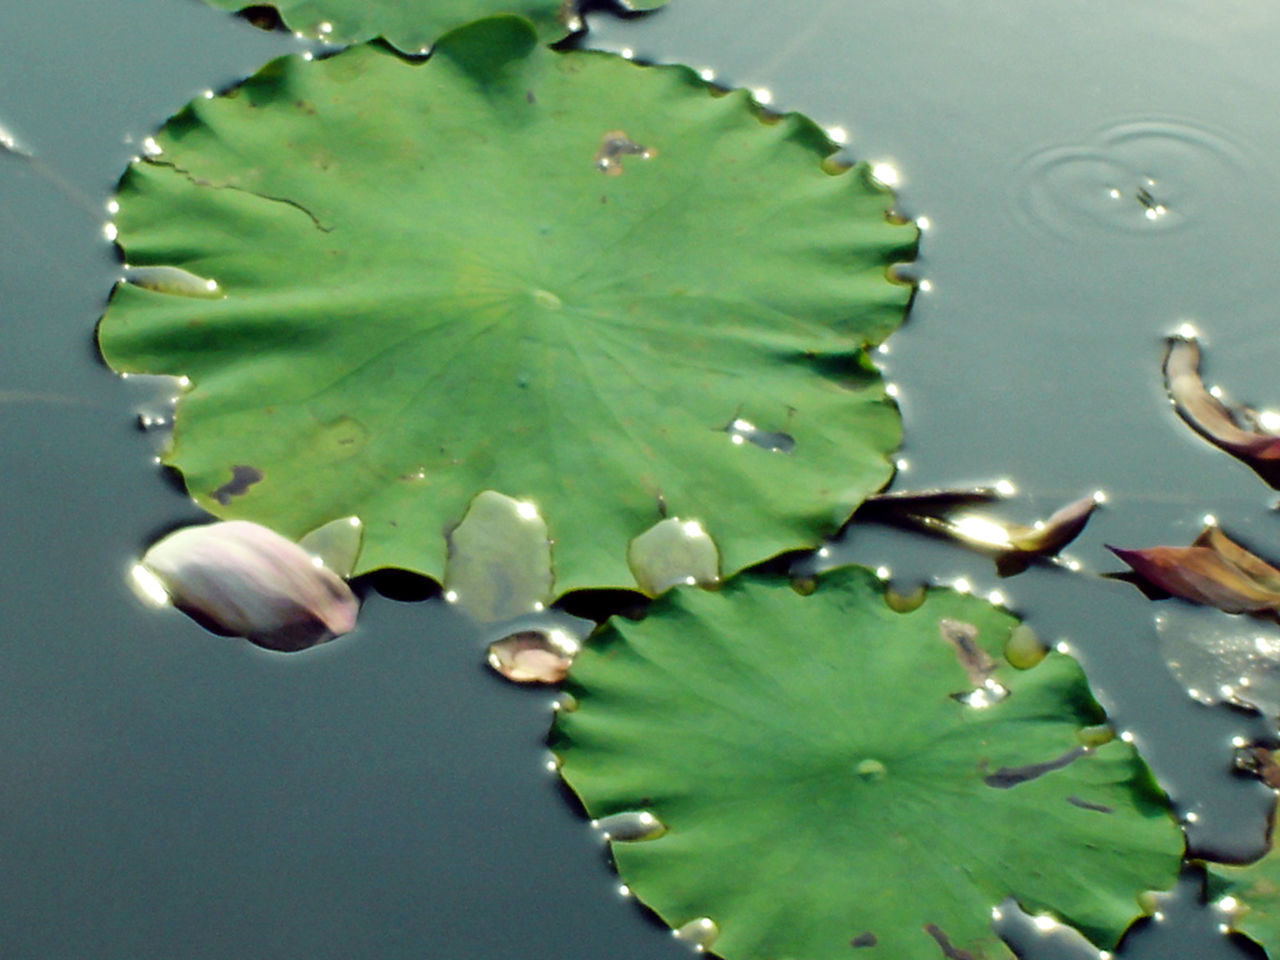 leaf, water, nature, beauty in nature, growth, close-up, drop, green color, no people, plant, freshness, outdoors, lily pad, day, fragility